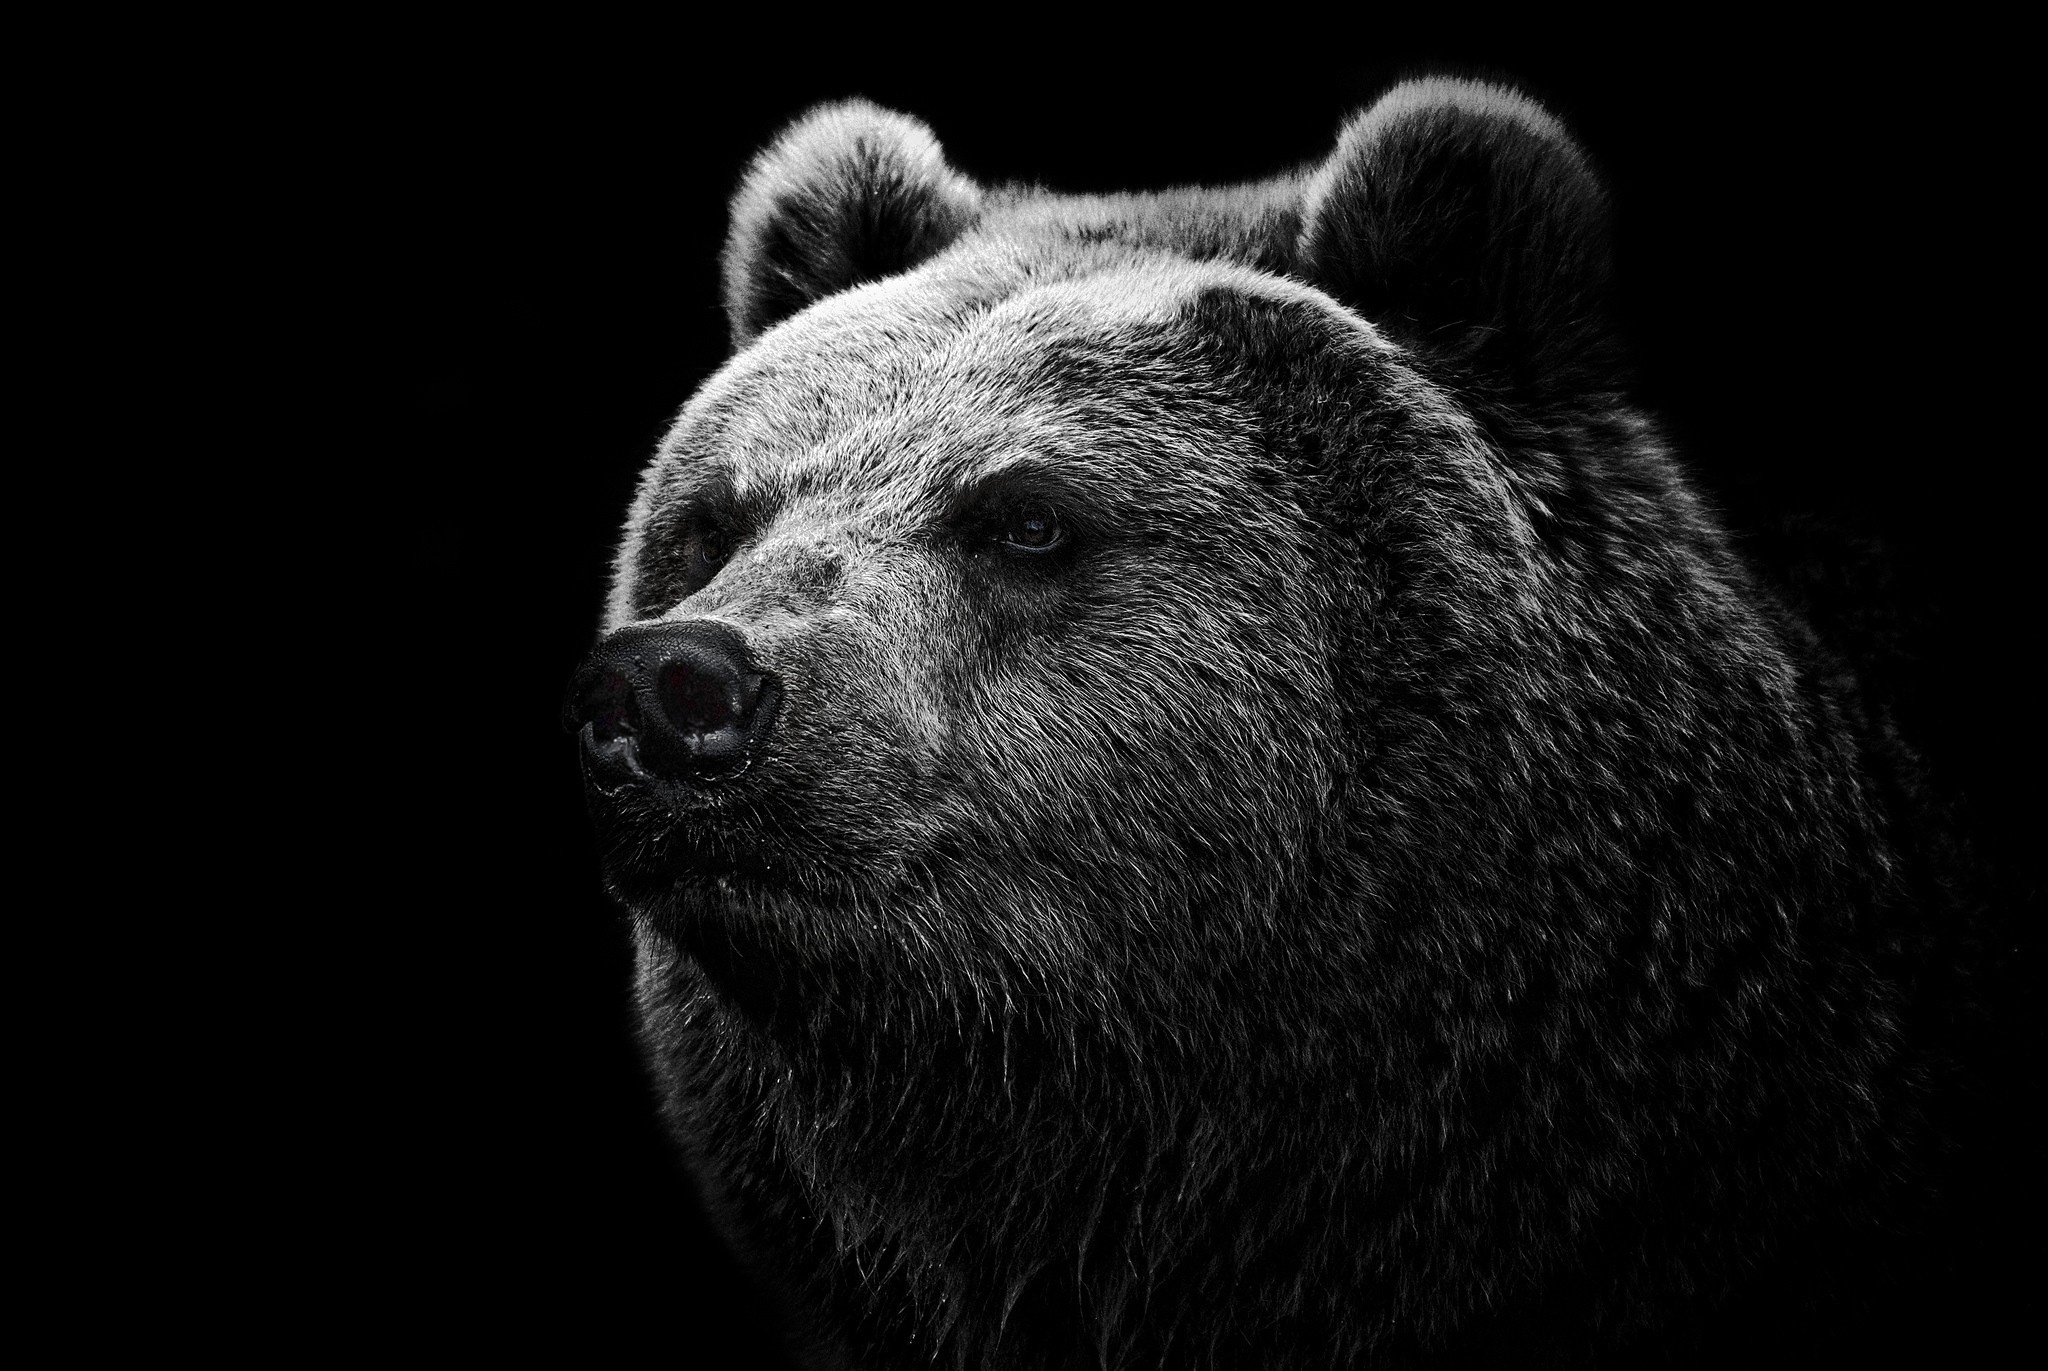 black bear wallpaper 2048x1371 171900 wallpaperup